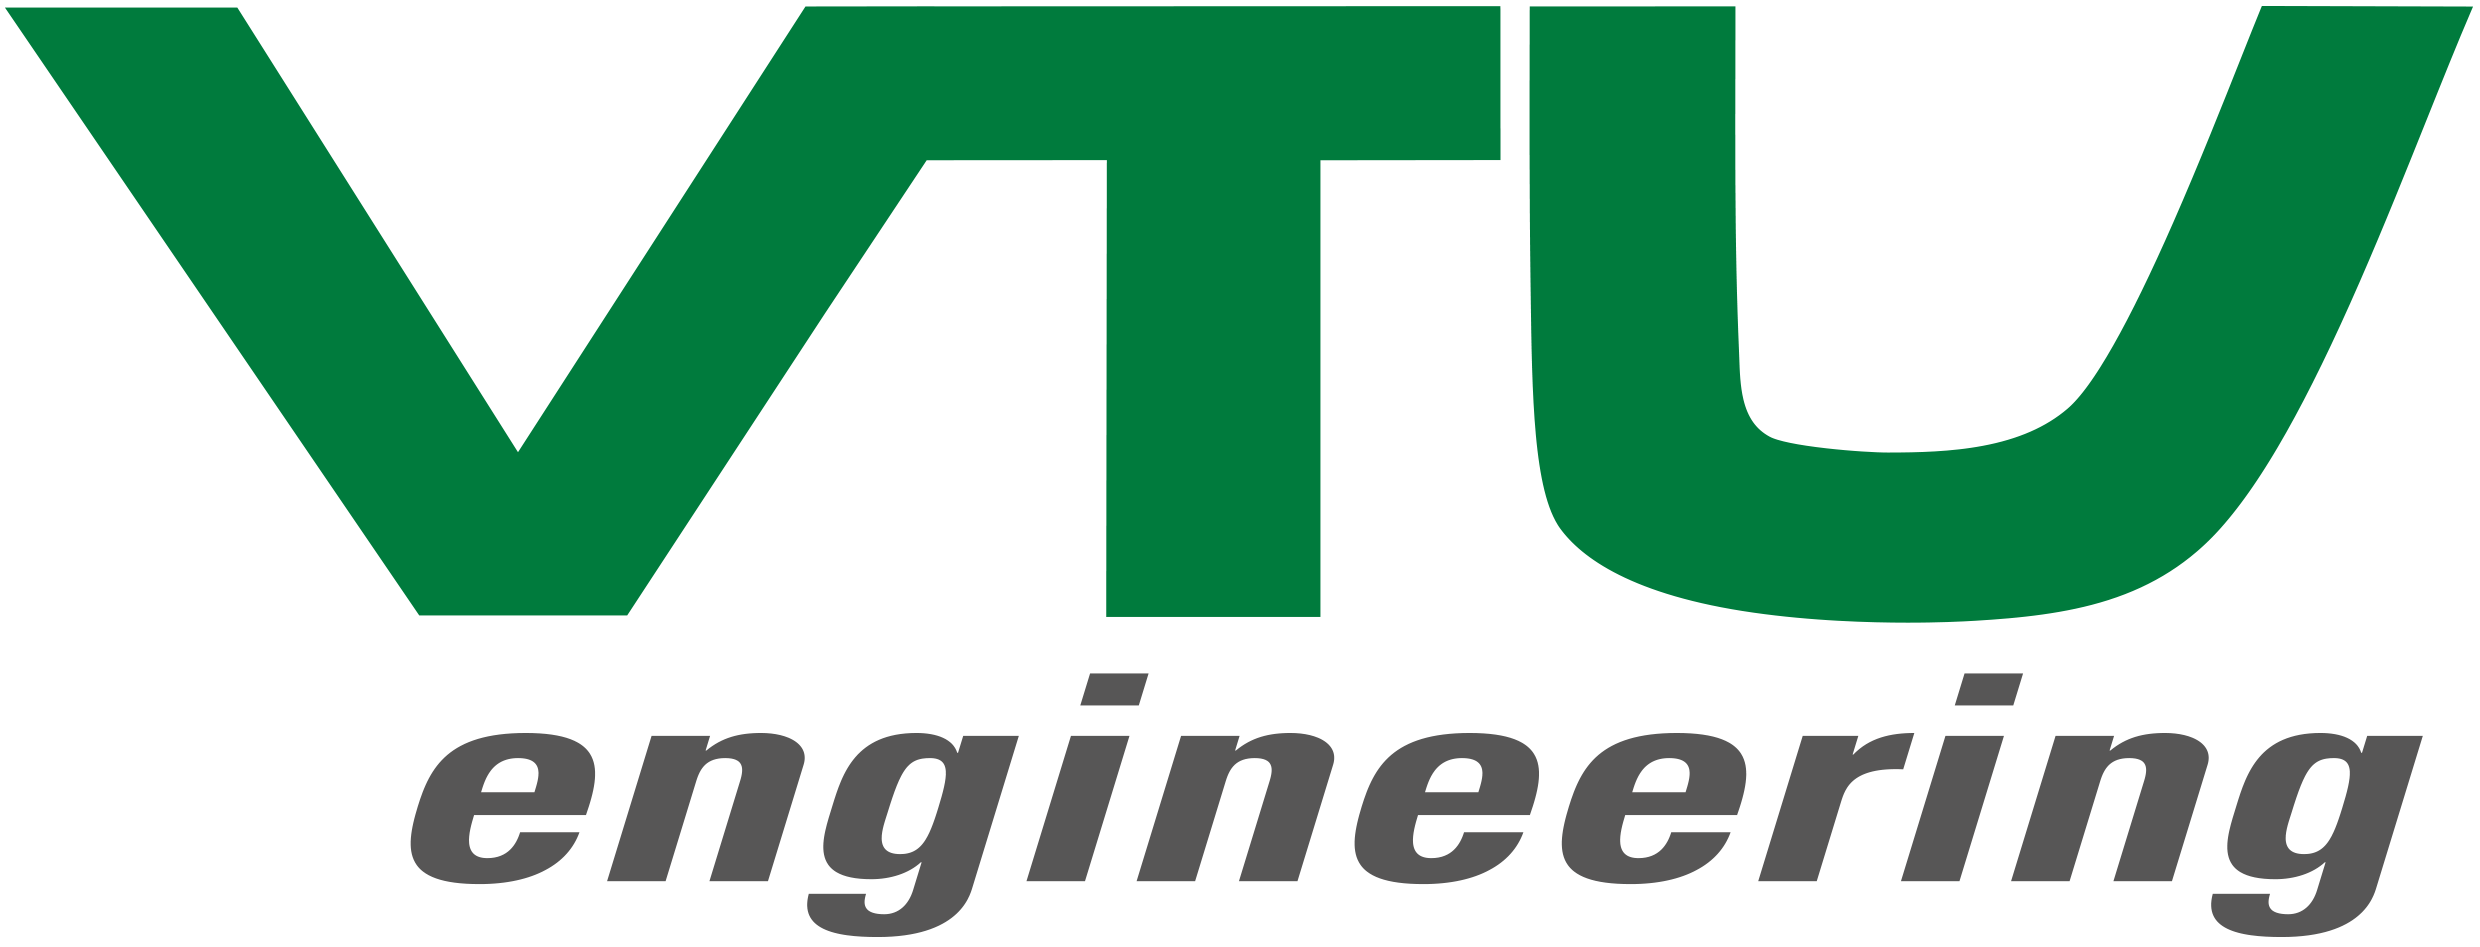 Logo: VTU Engineering GmbH